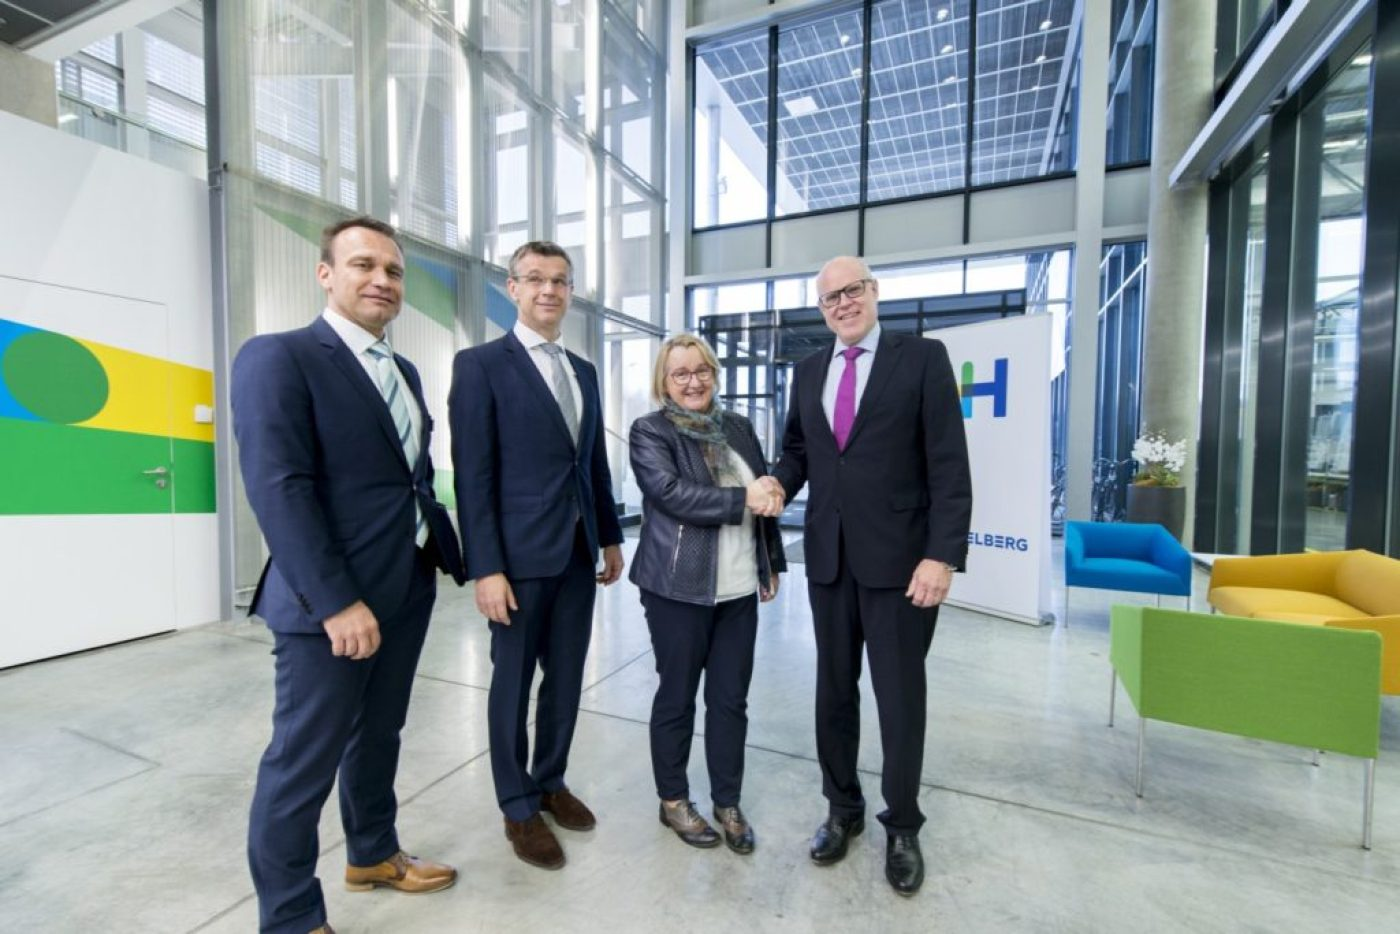 Science Minister Bauer (2nd right) and CEO Hundsdörfer (right) launch new development center project at the company's Wiesloch-Walldorf site. Frank Kropp, Head of R&D (left) and Stephan Plenz, Board Member for Equipment (2nd left)